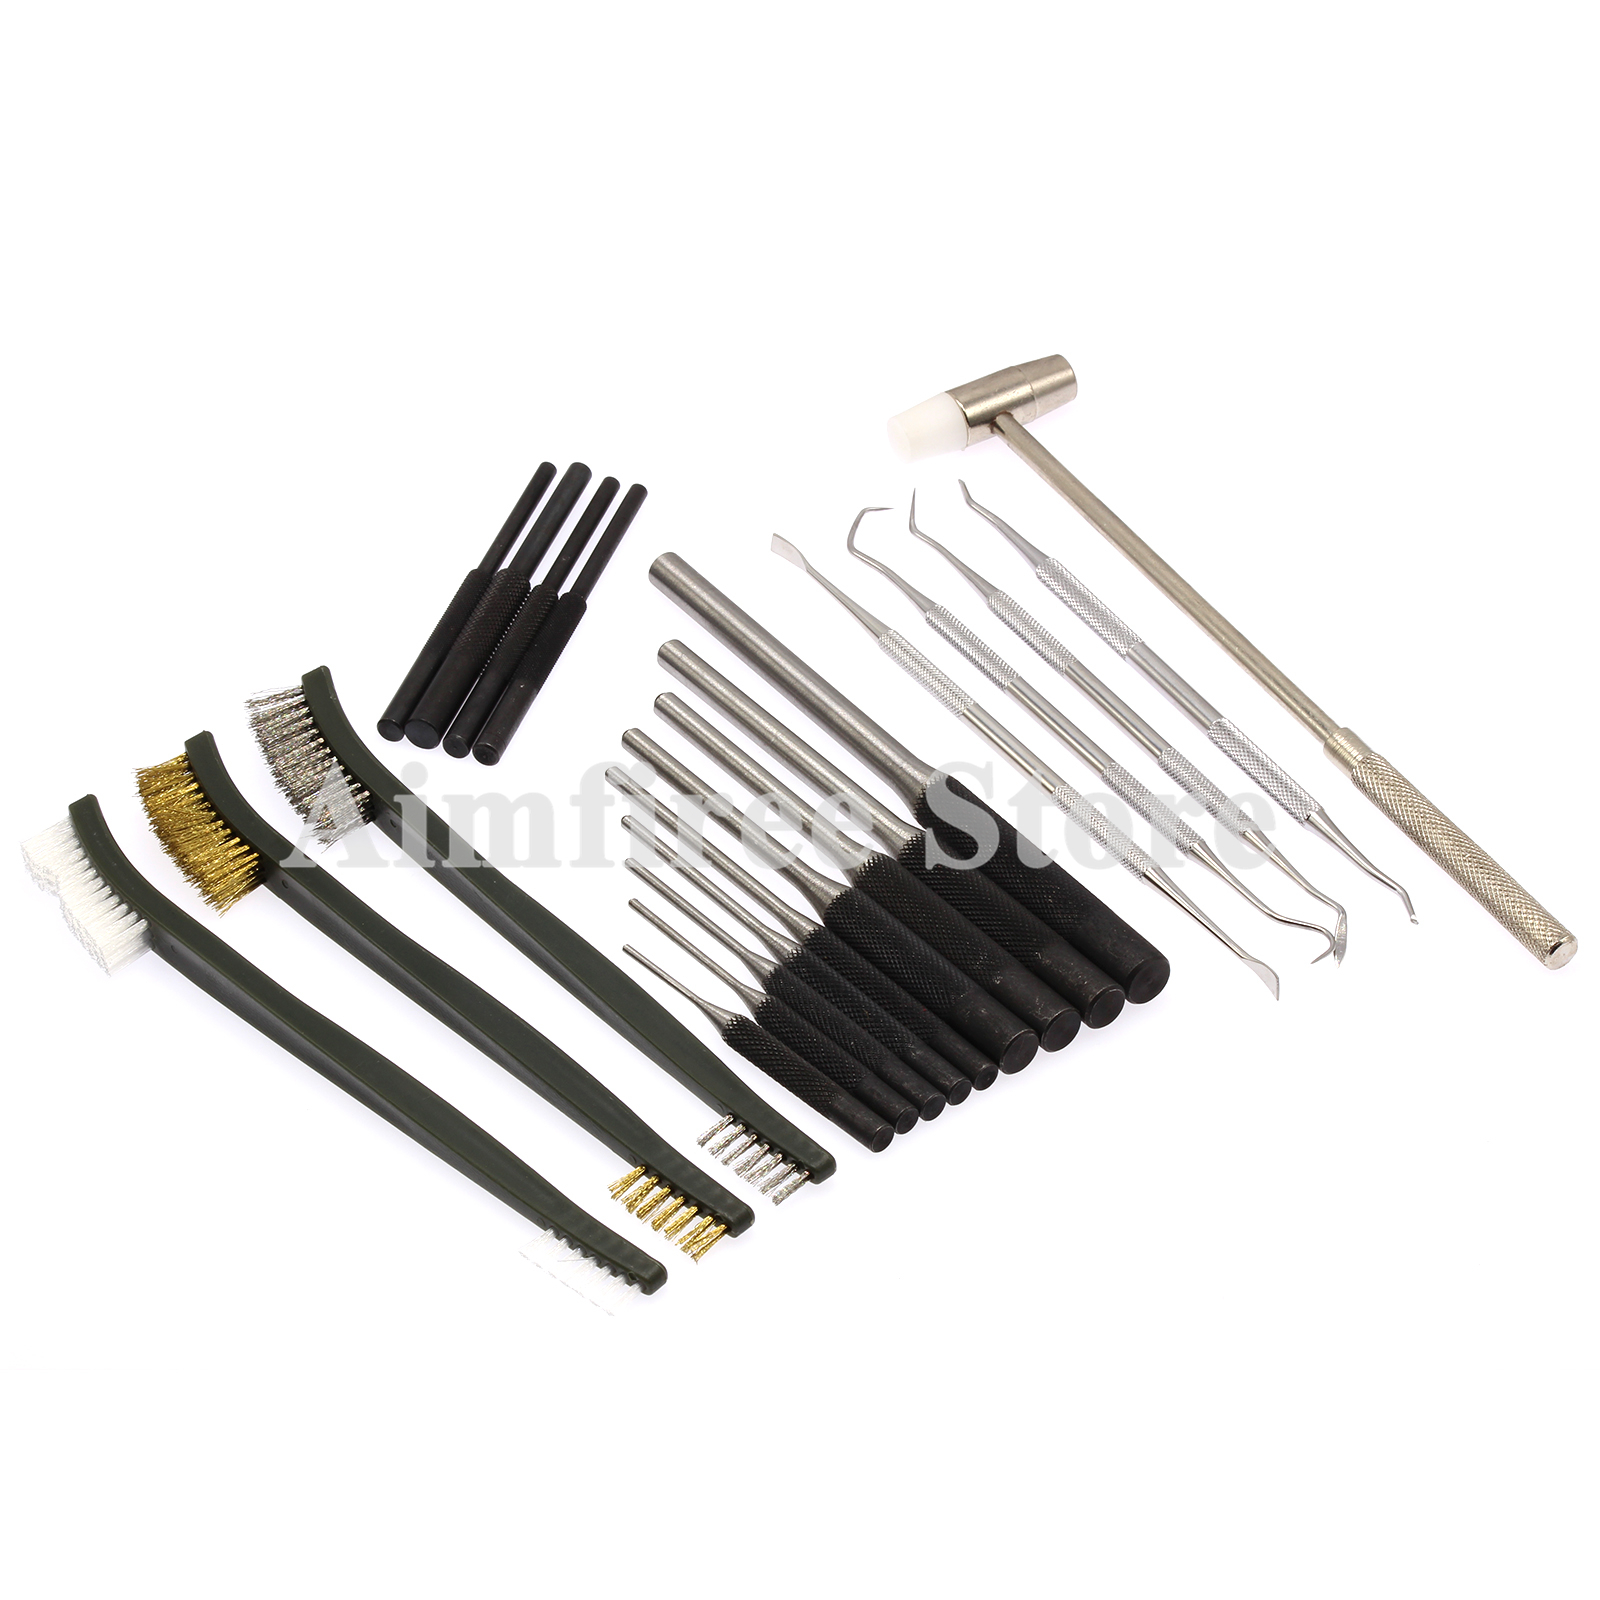 13pcs Roll Pin Starter Punch Set 4pcs Stainless Steel Picks Cleaning Brush Mallet Hammer For Gunsmith